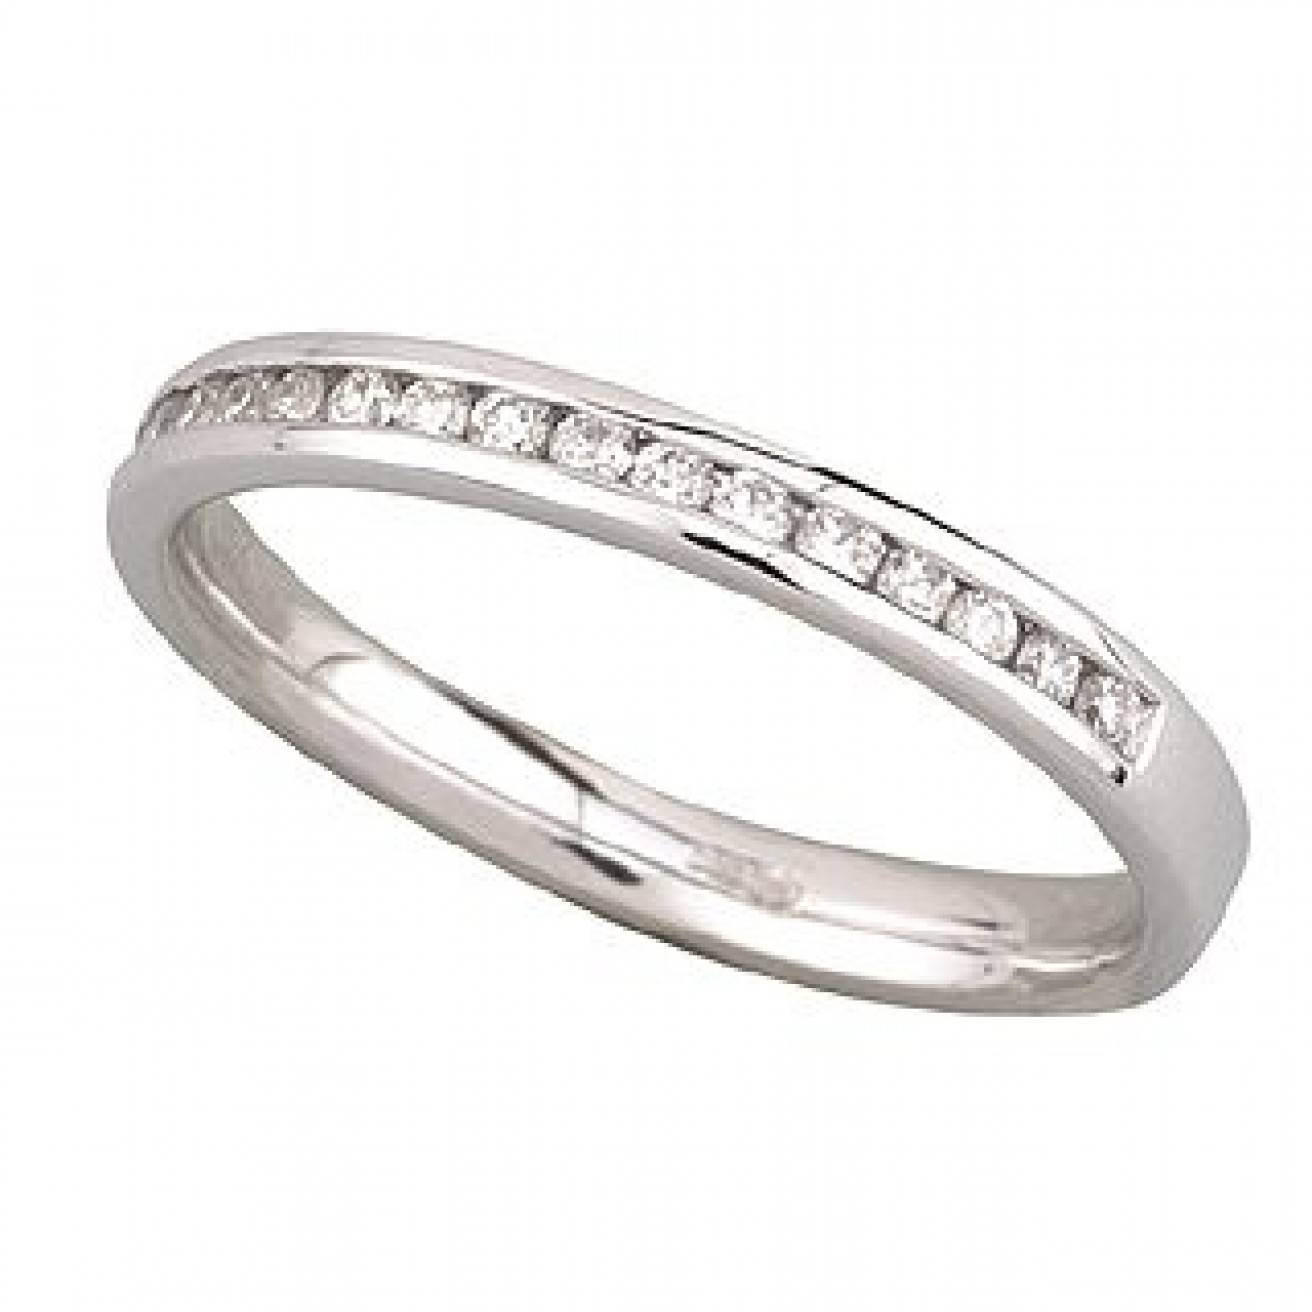 Buy White Gold Wedding Rings Online – Fraser Hart Within White Gold Wedding Rings For Women (View 6 of 15)